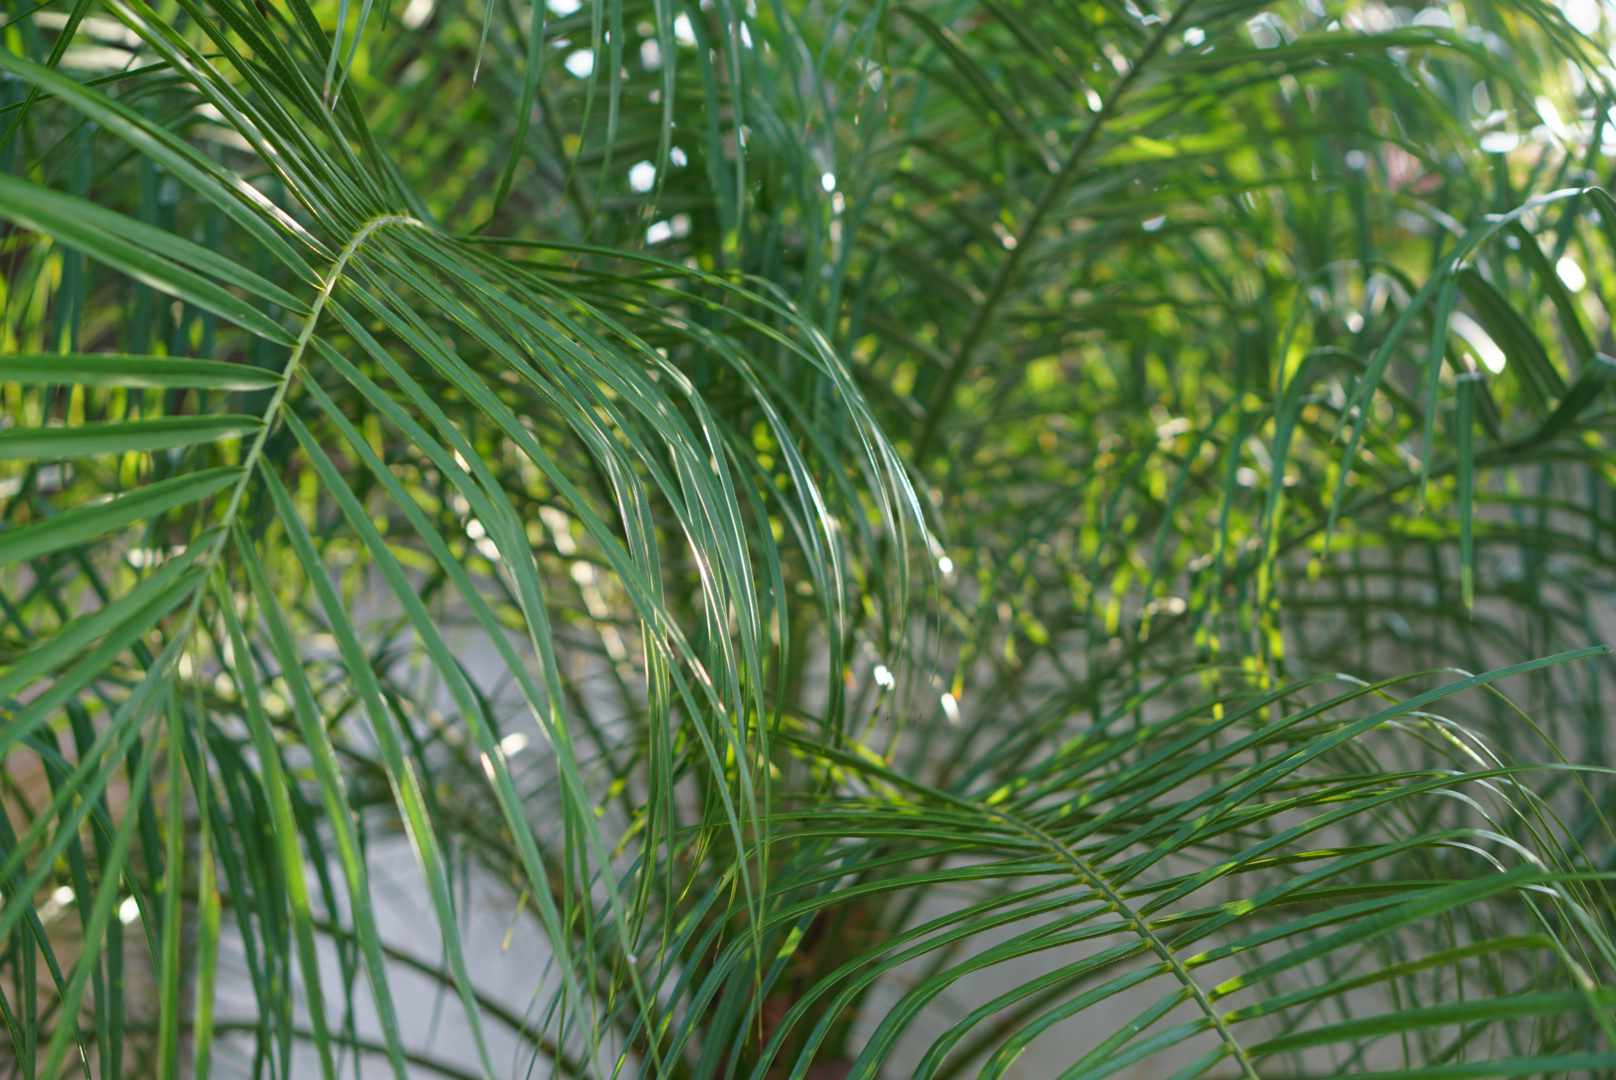 Queen palm with feathery and glossy green fronds closeup